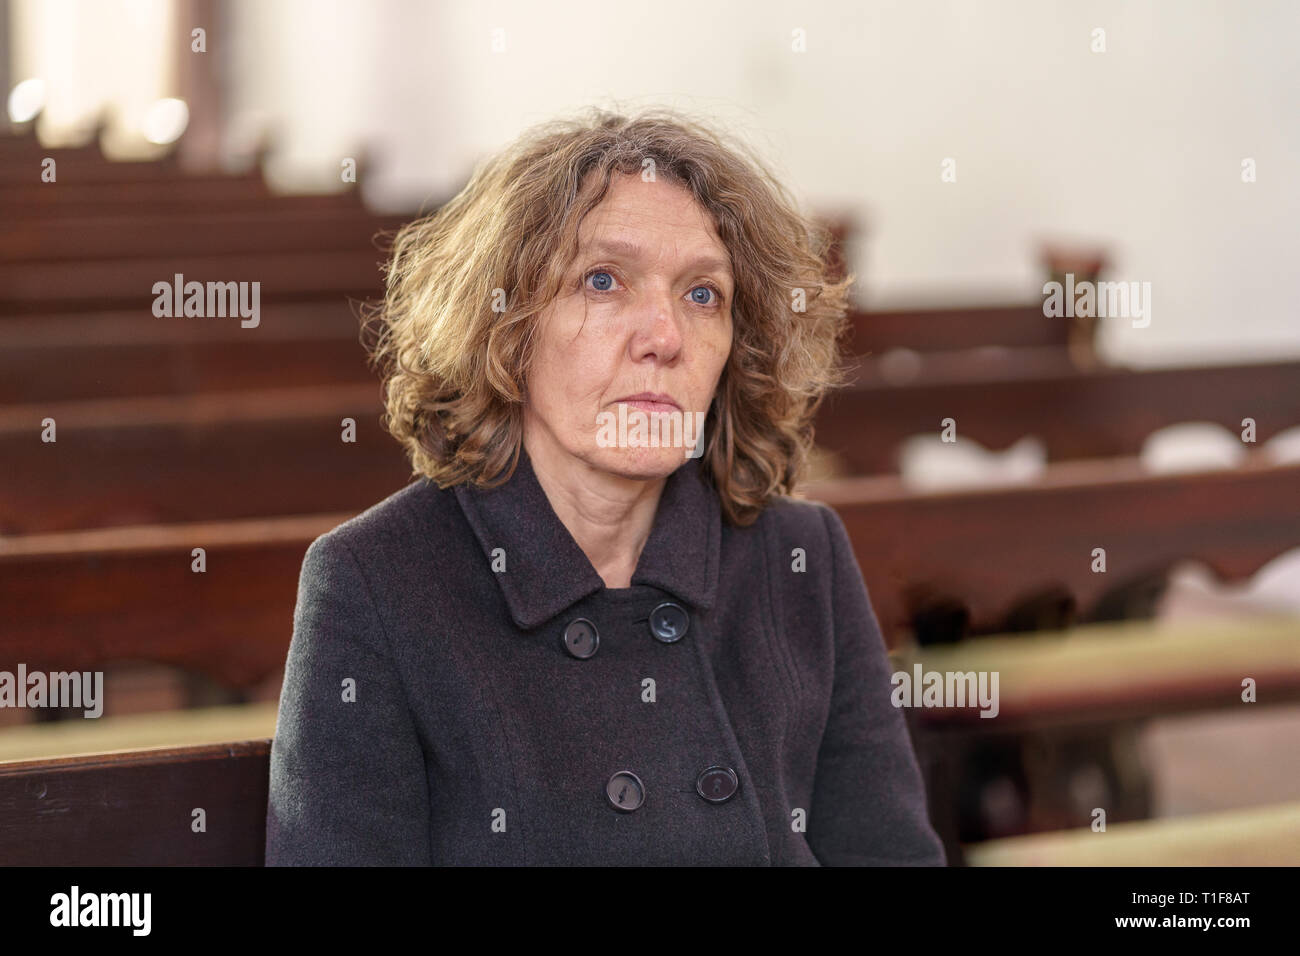 Religious woman sitting alone in a church pew looking ahead towards the altar deep in spiritual thought and praying - Stock Image